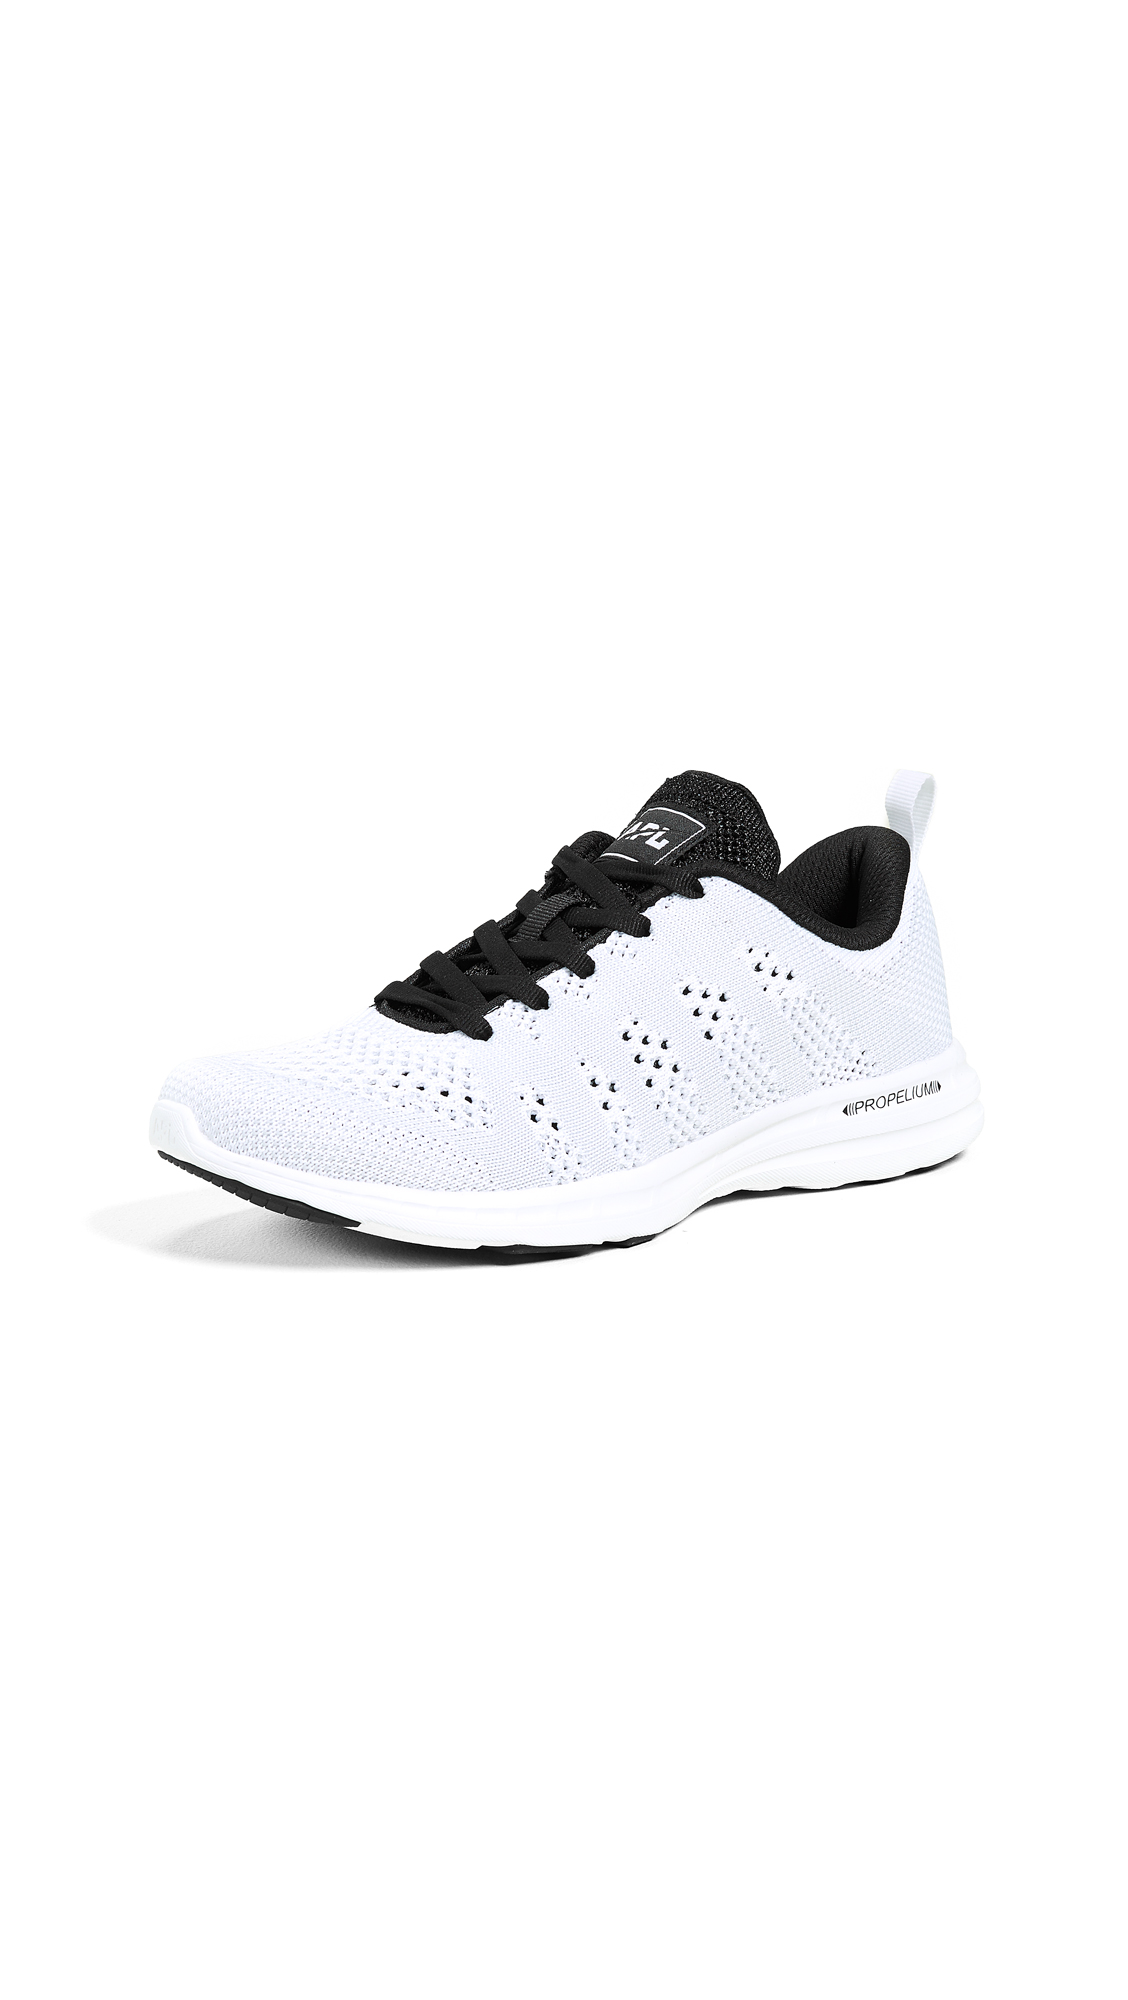 APL: Athletic Propulsion Labs TechLoom Pro Sneakers - White/Grey/Metallic Black